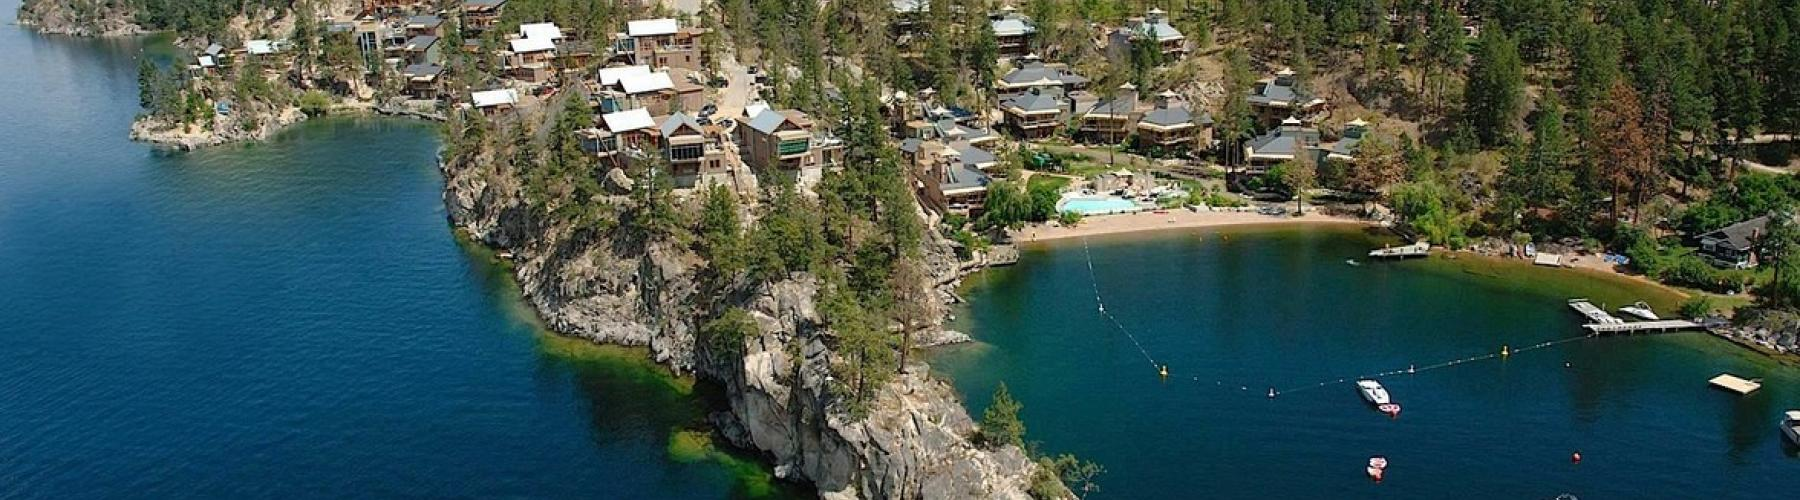 Aerial View Of Outback Vacation Homes